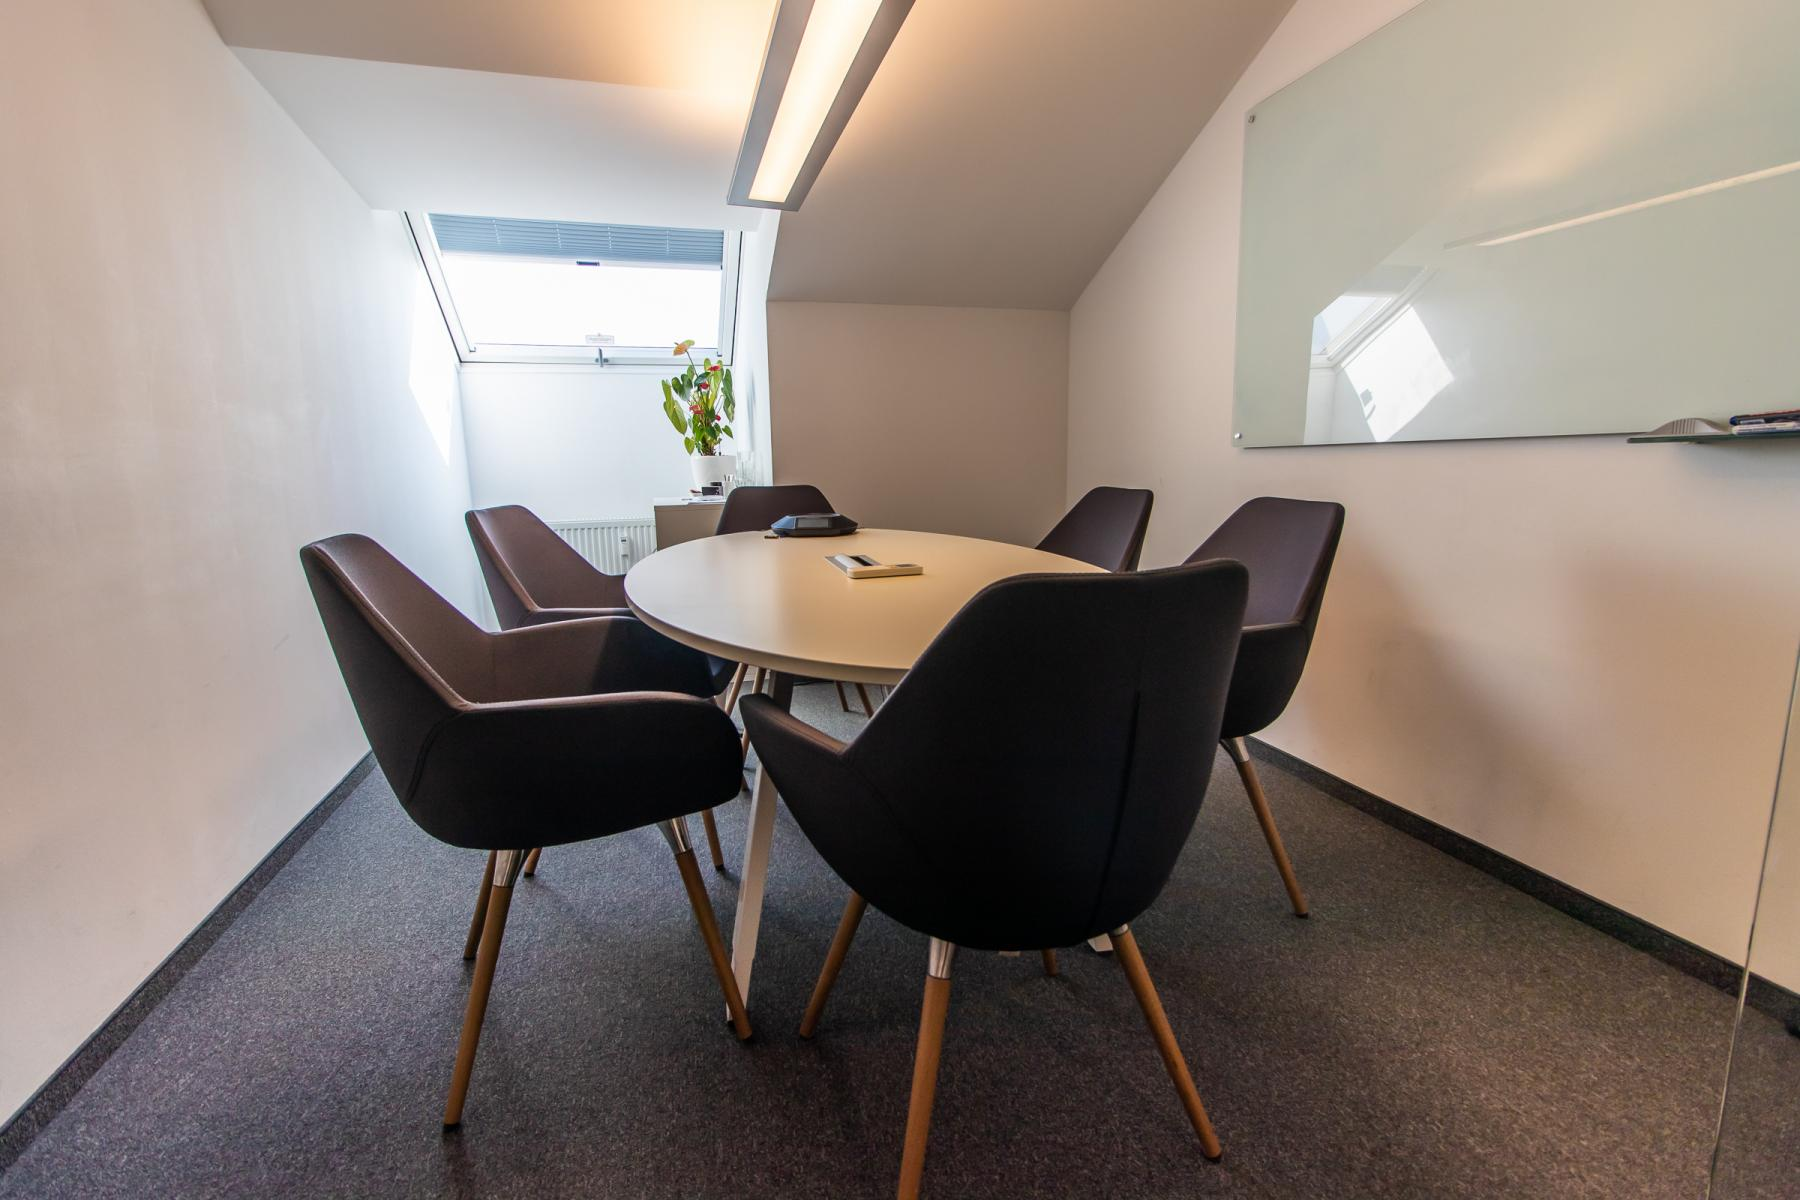 Modern common room in the business center in Munich, Viktualienmarkt